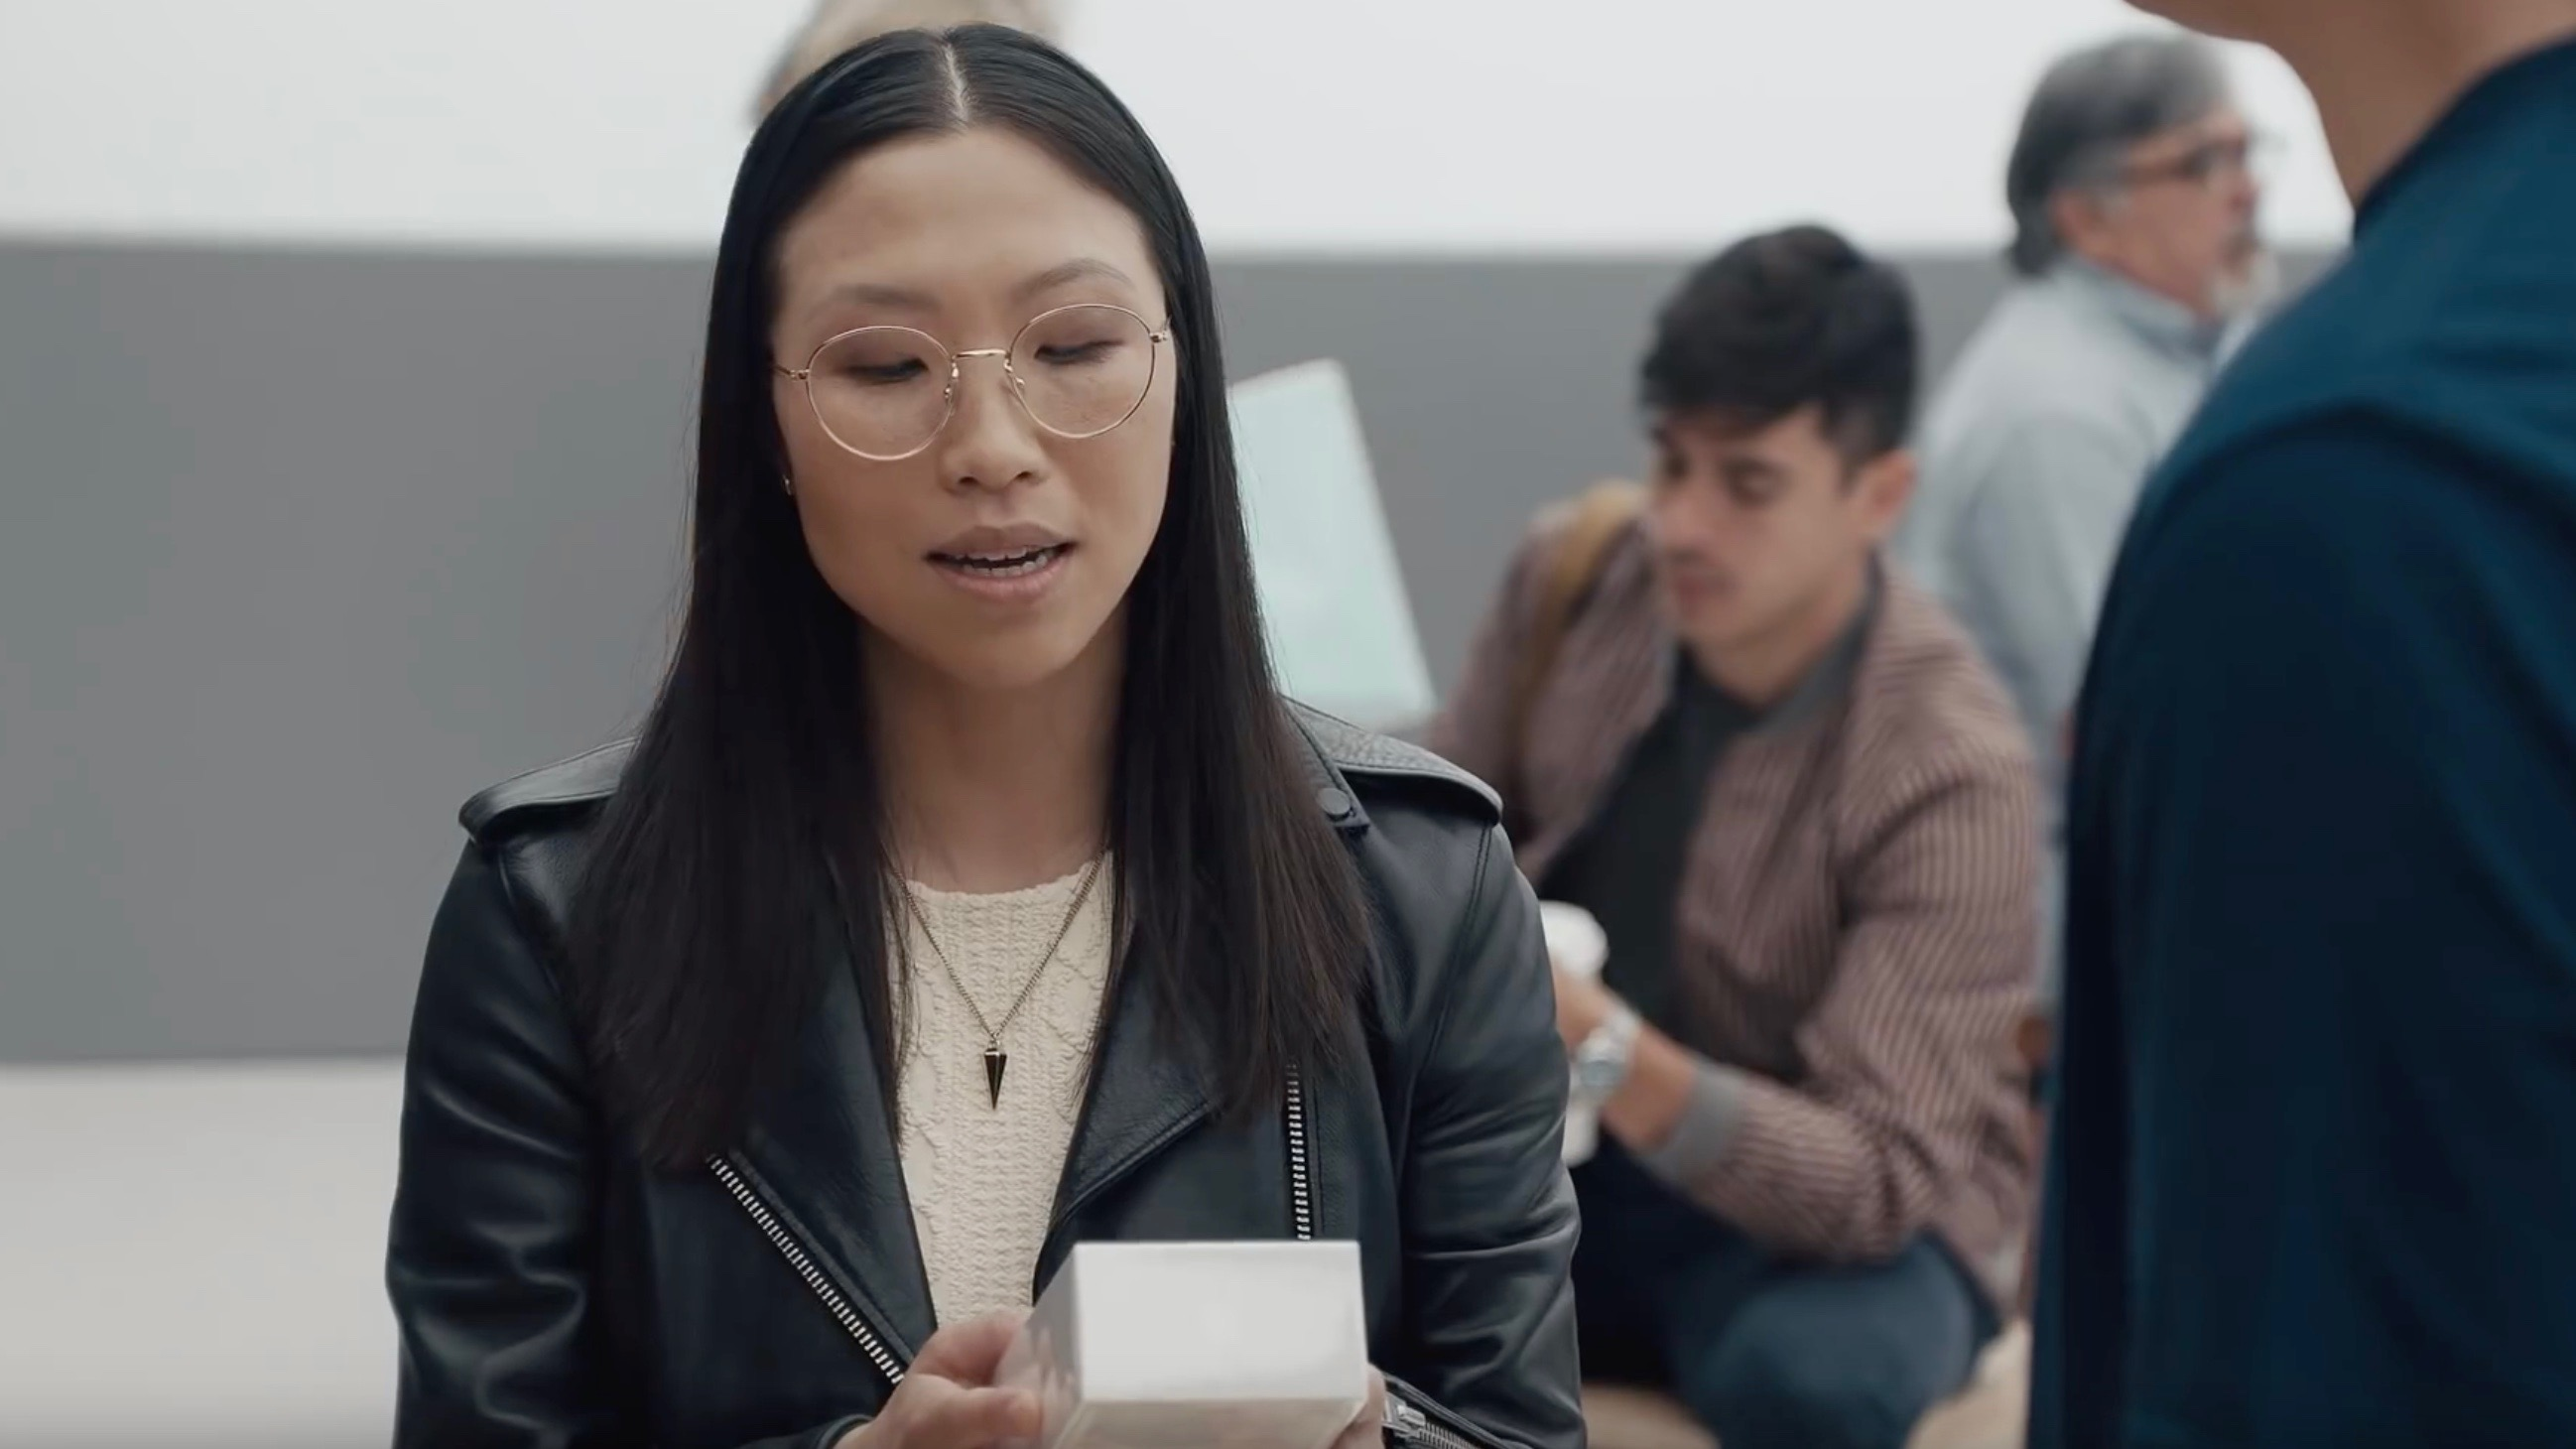 samsung s latest ingenius ads poke fun at iphone x dongles fast charging more